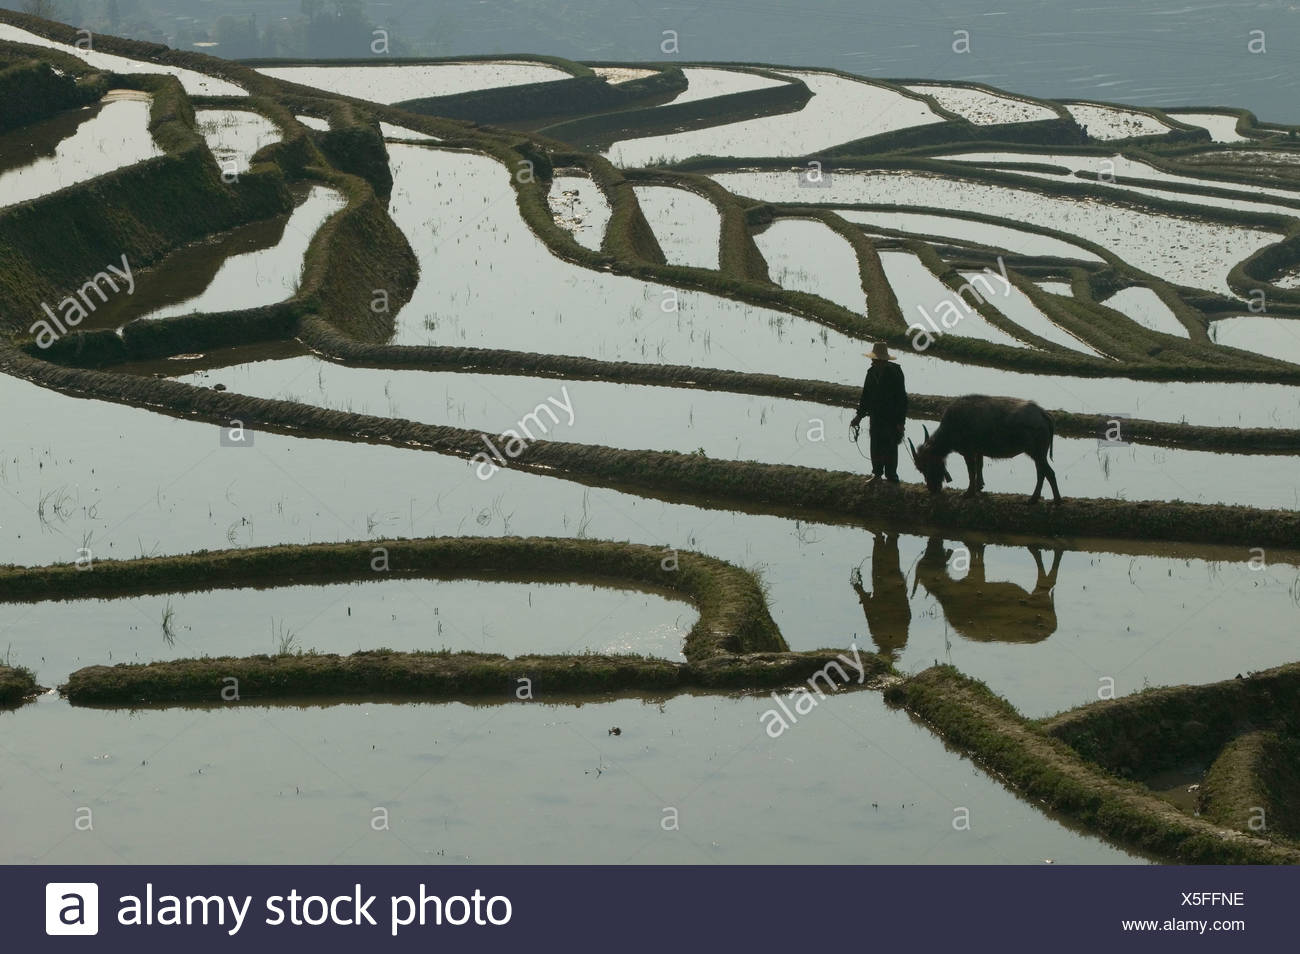 A farmer walks with his water buffalo on the edge of a terraced rice paddy, Yunnan Province, China. - Stock Image